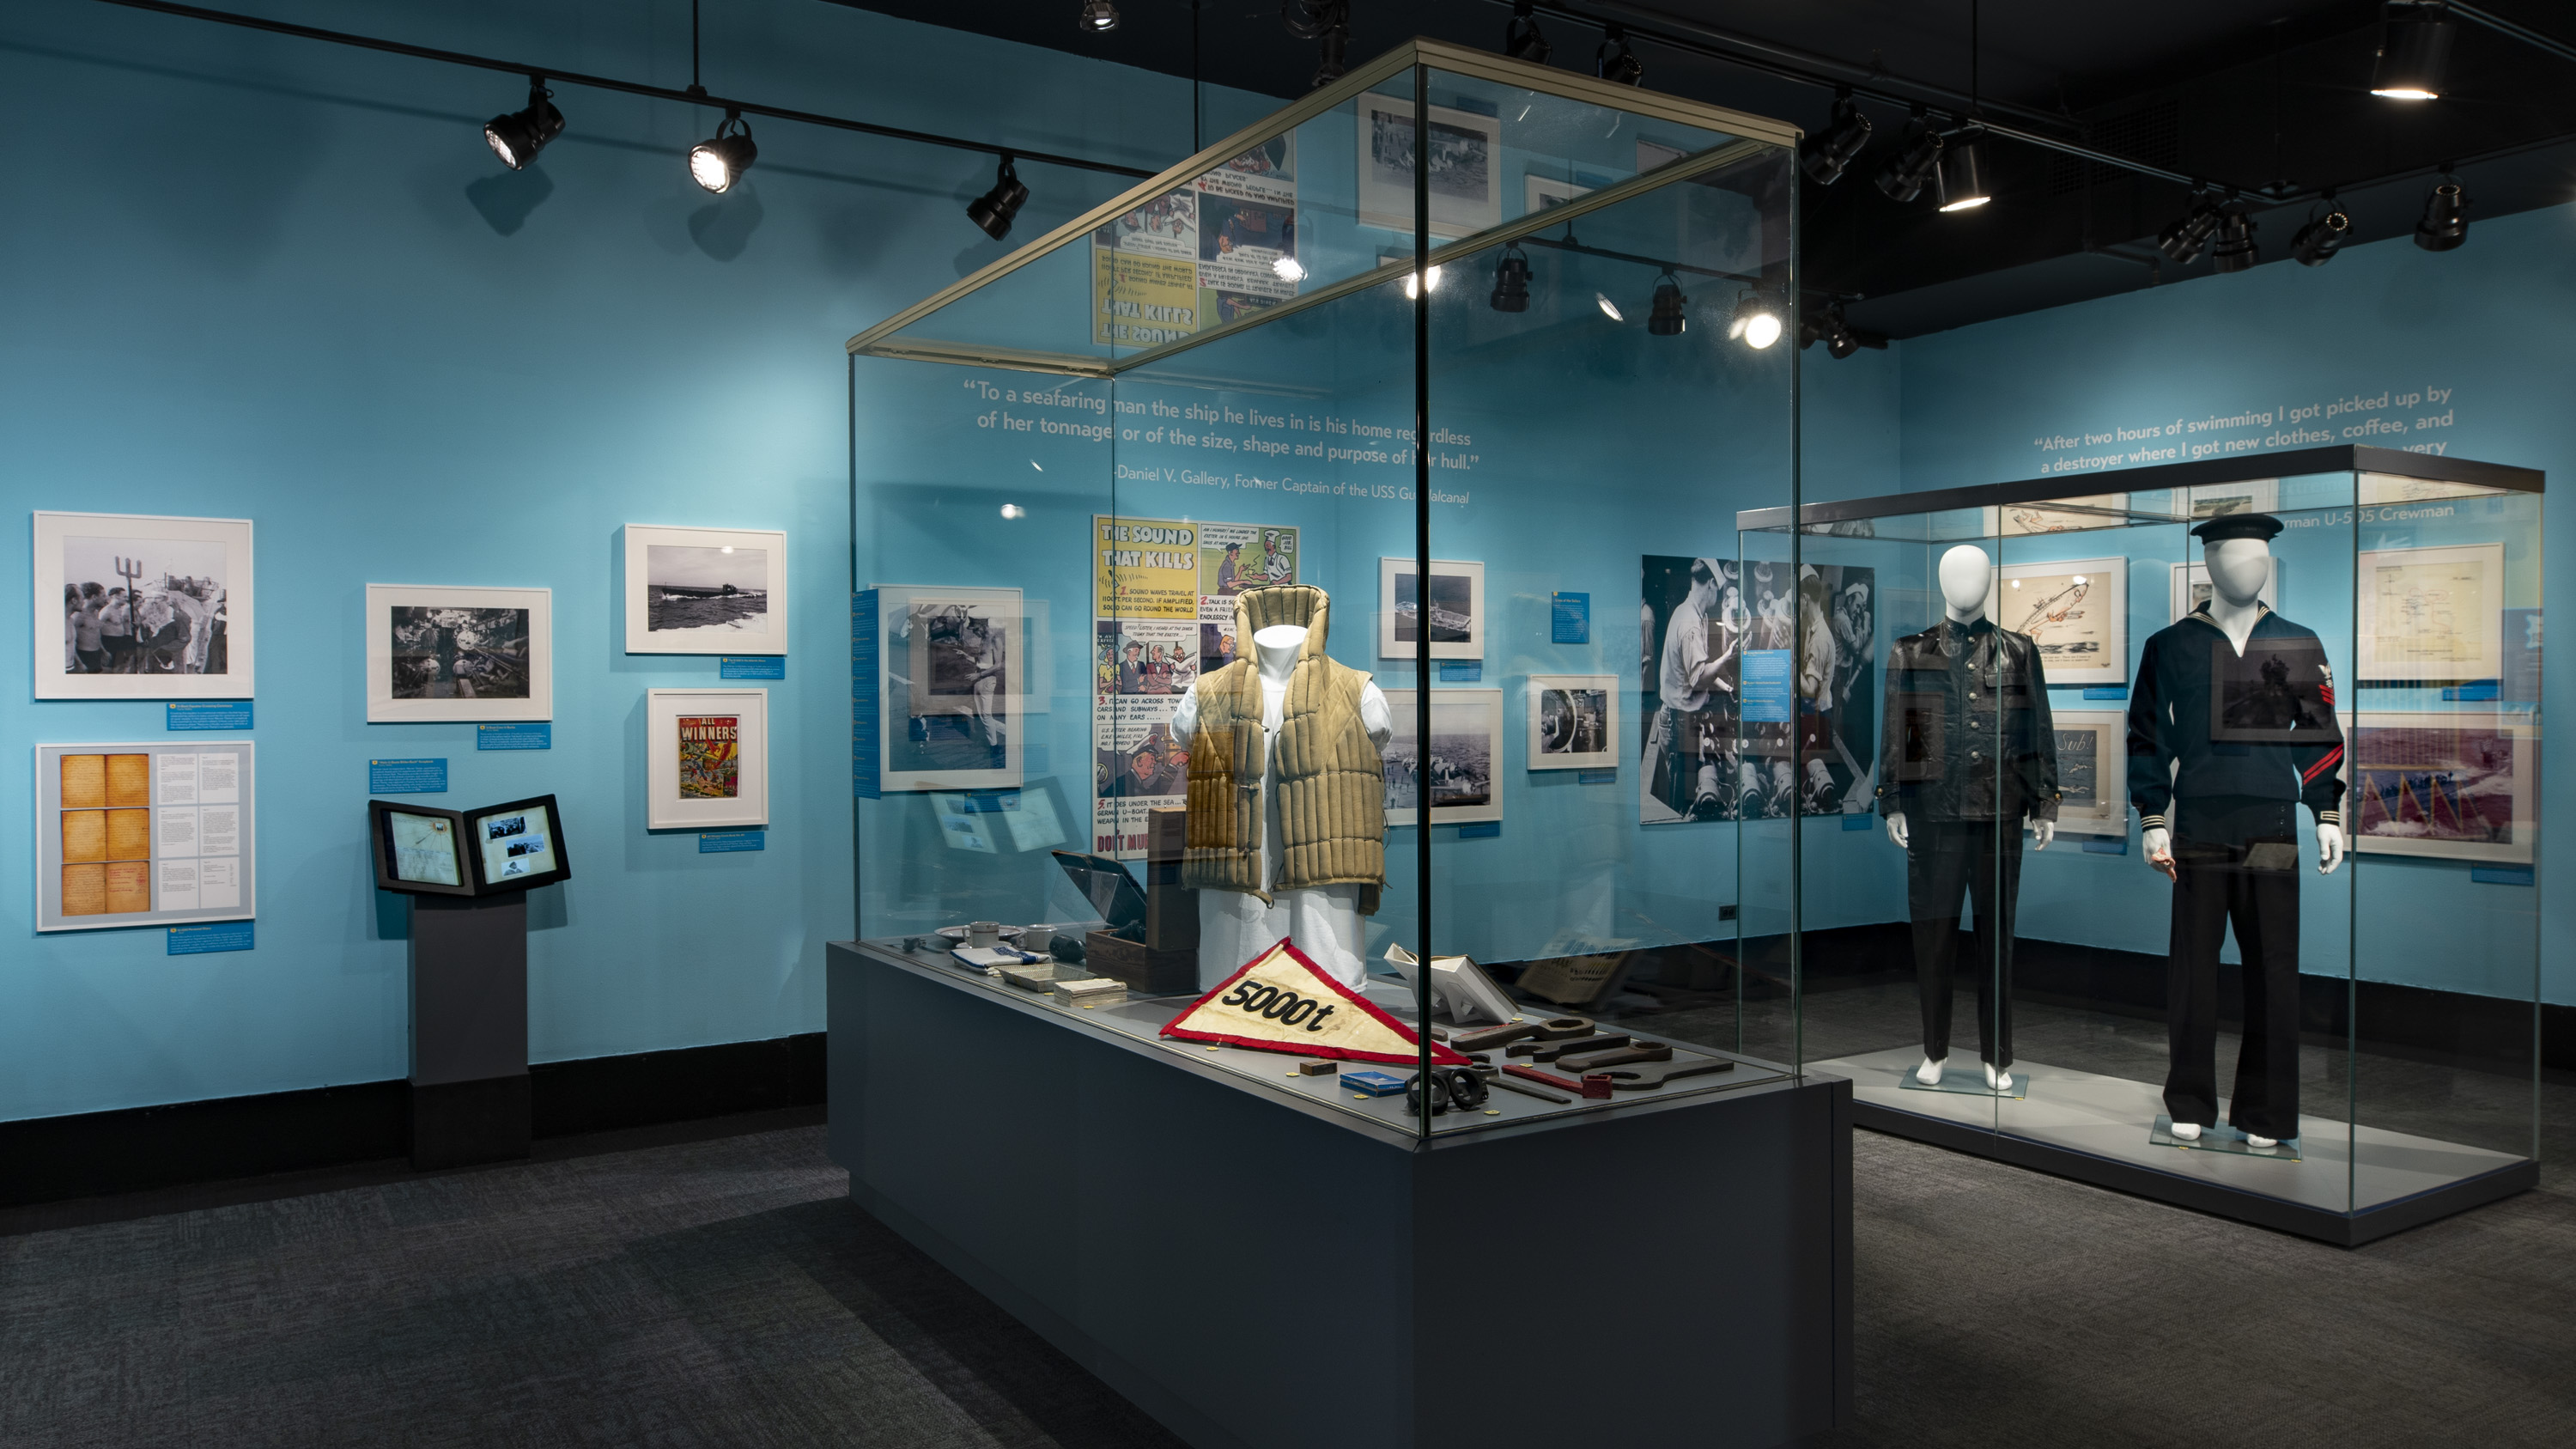 U-505 75th Anniversary Exhibit